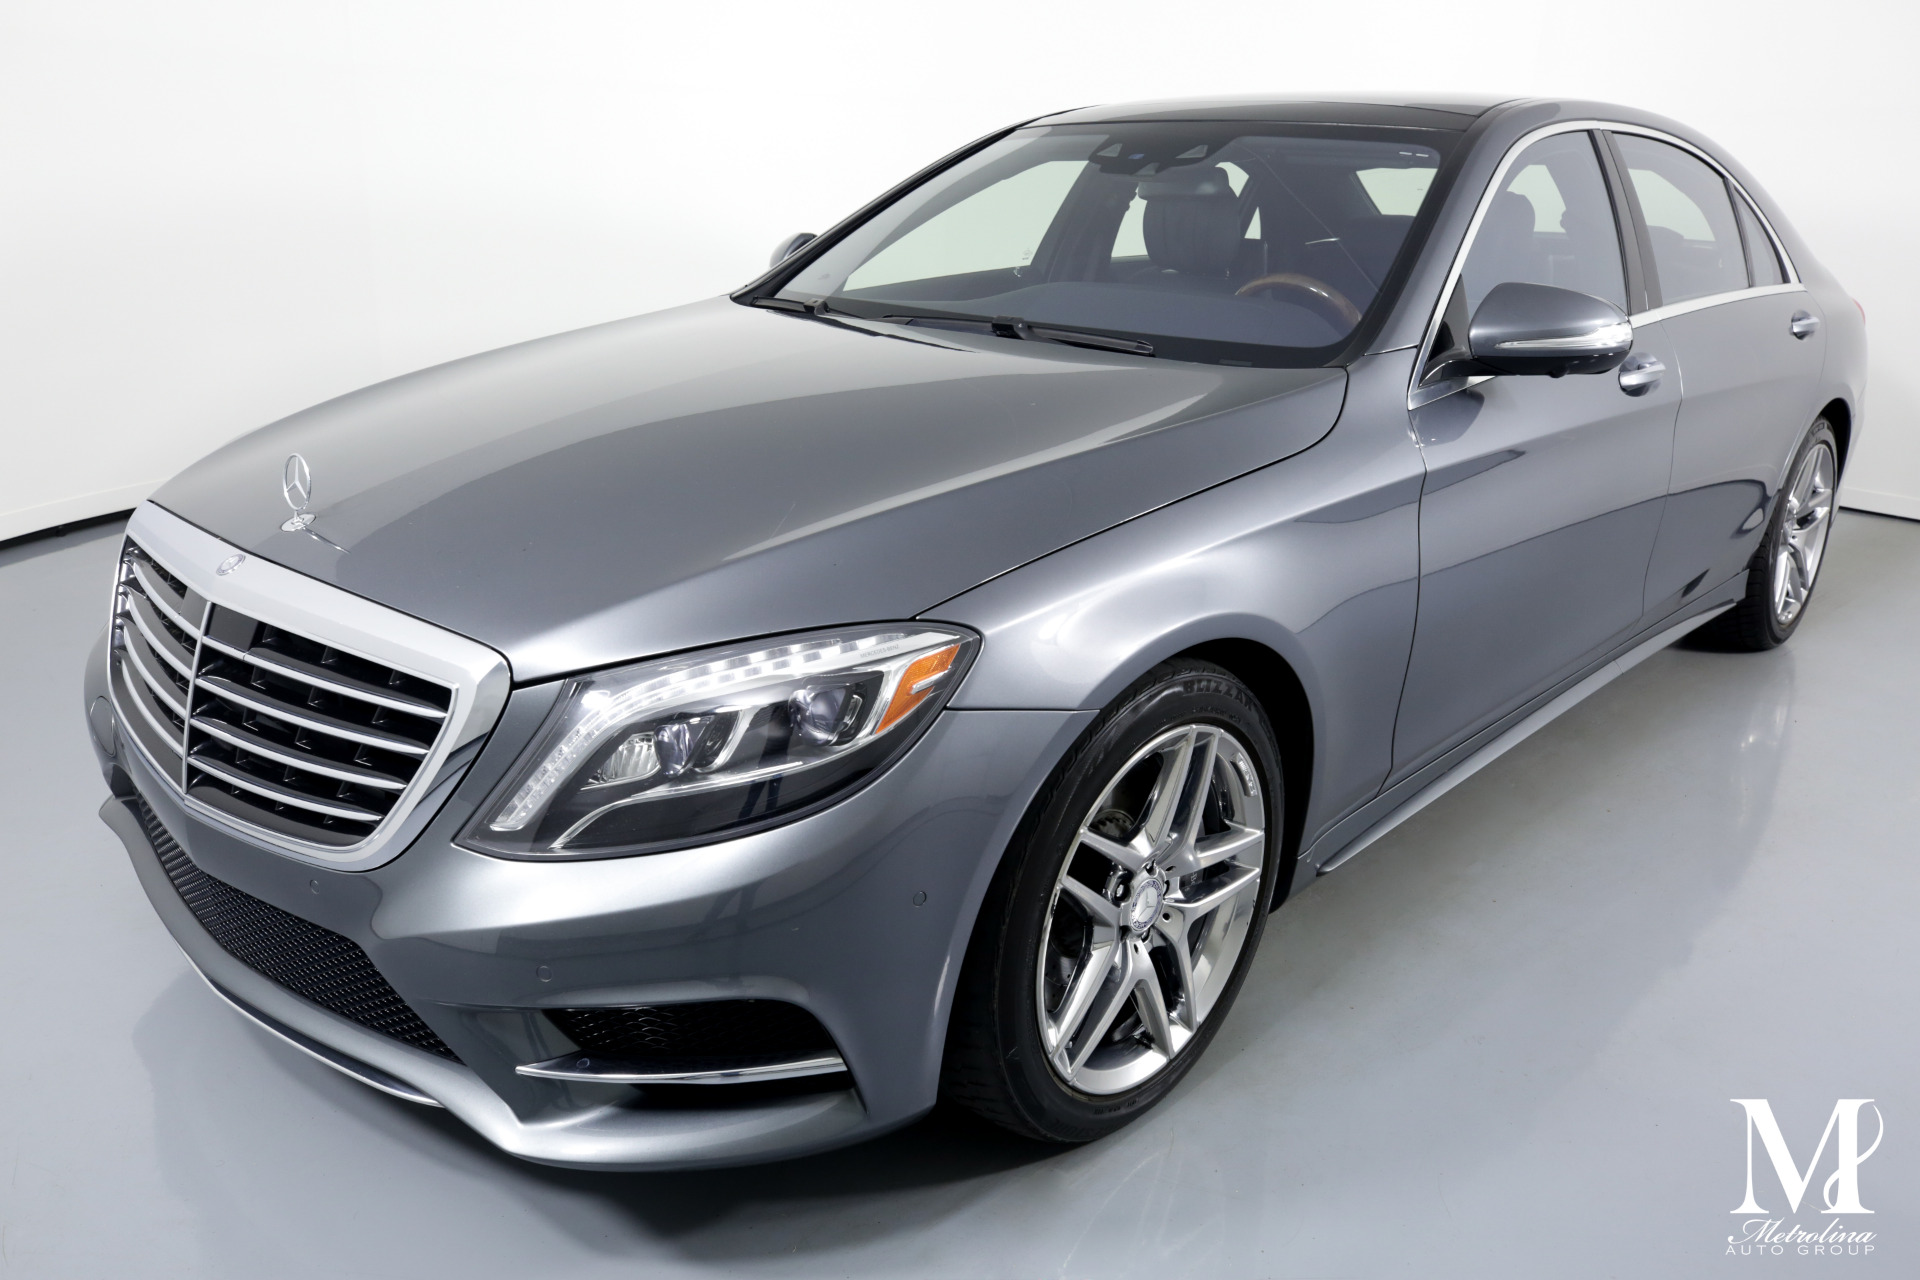 Used 2017 Mercedes-Benz S-Class S 550 4MATIC AWD 4dr Sedan for sale Sold at Metrolina Auto Group in Charlotte NC 28217 - 4